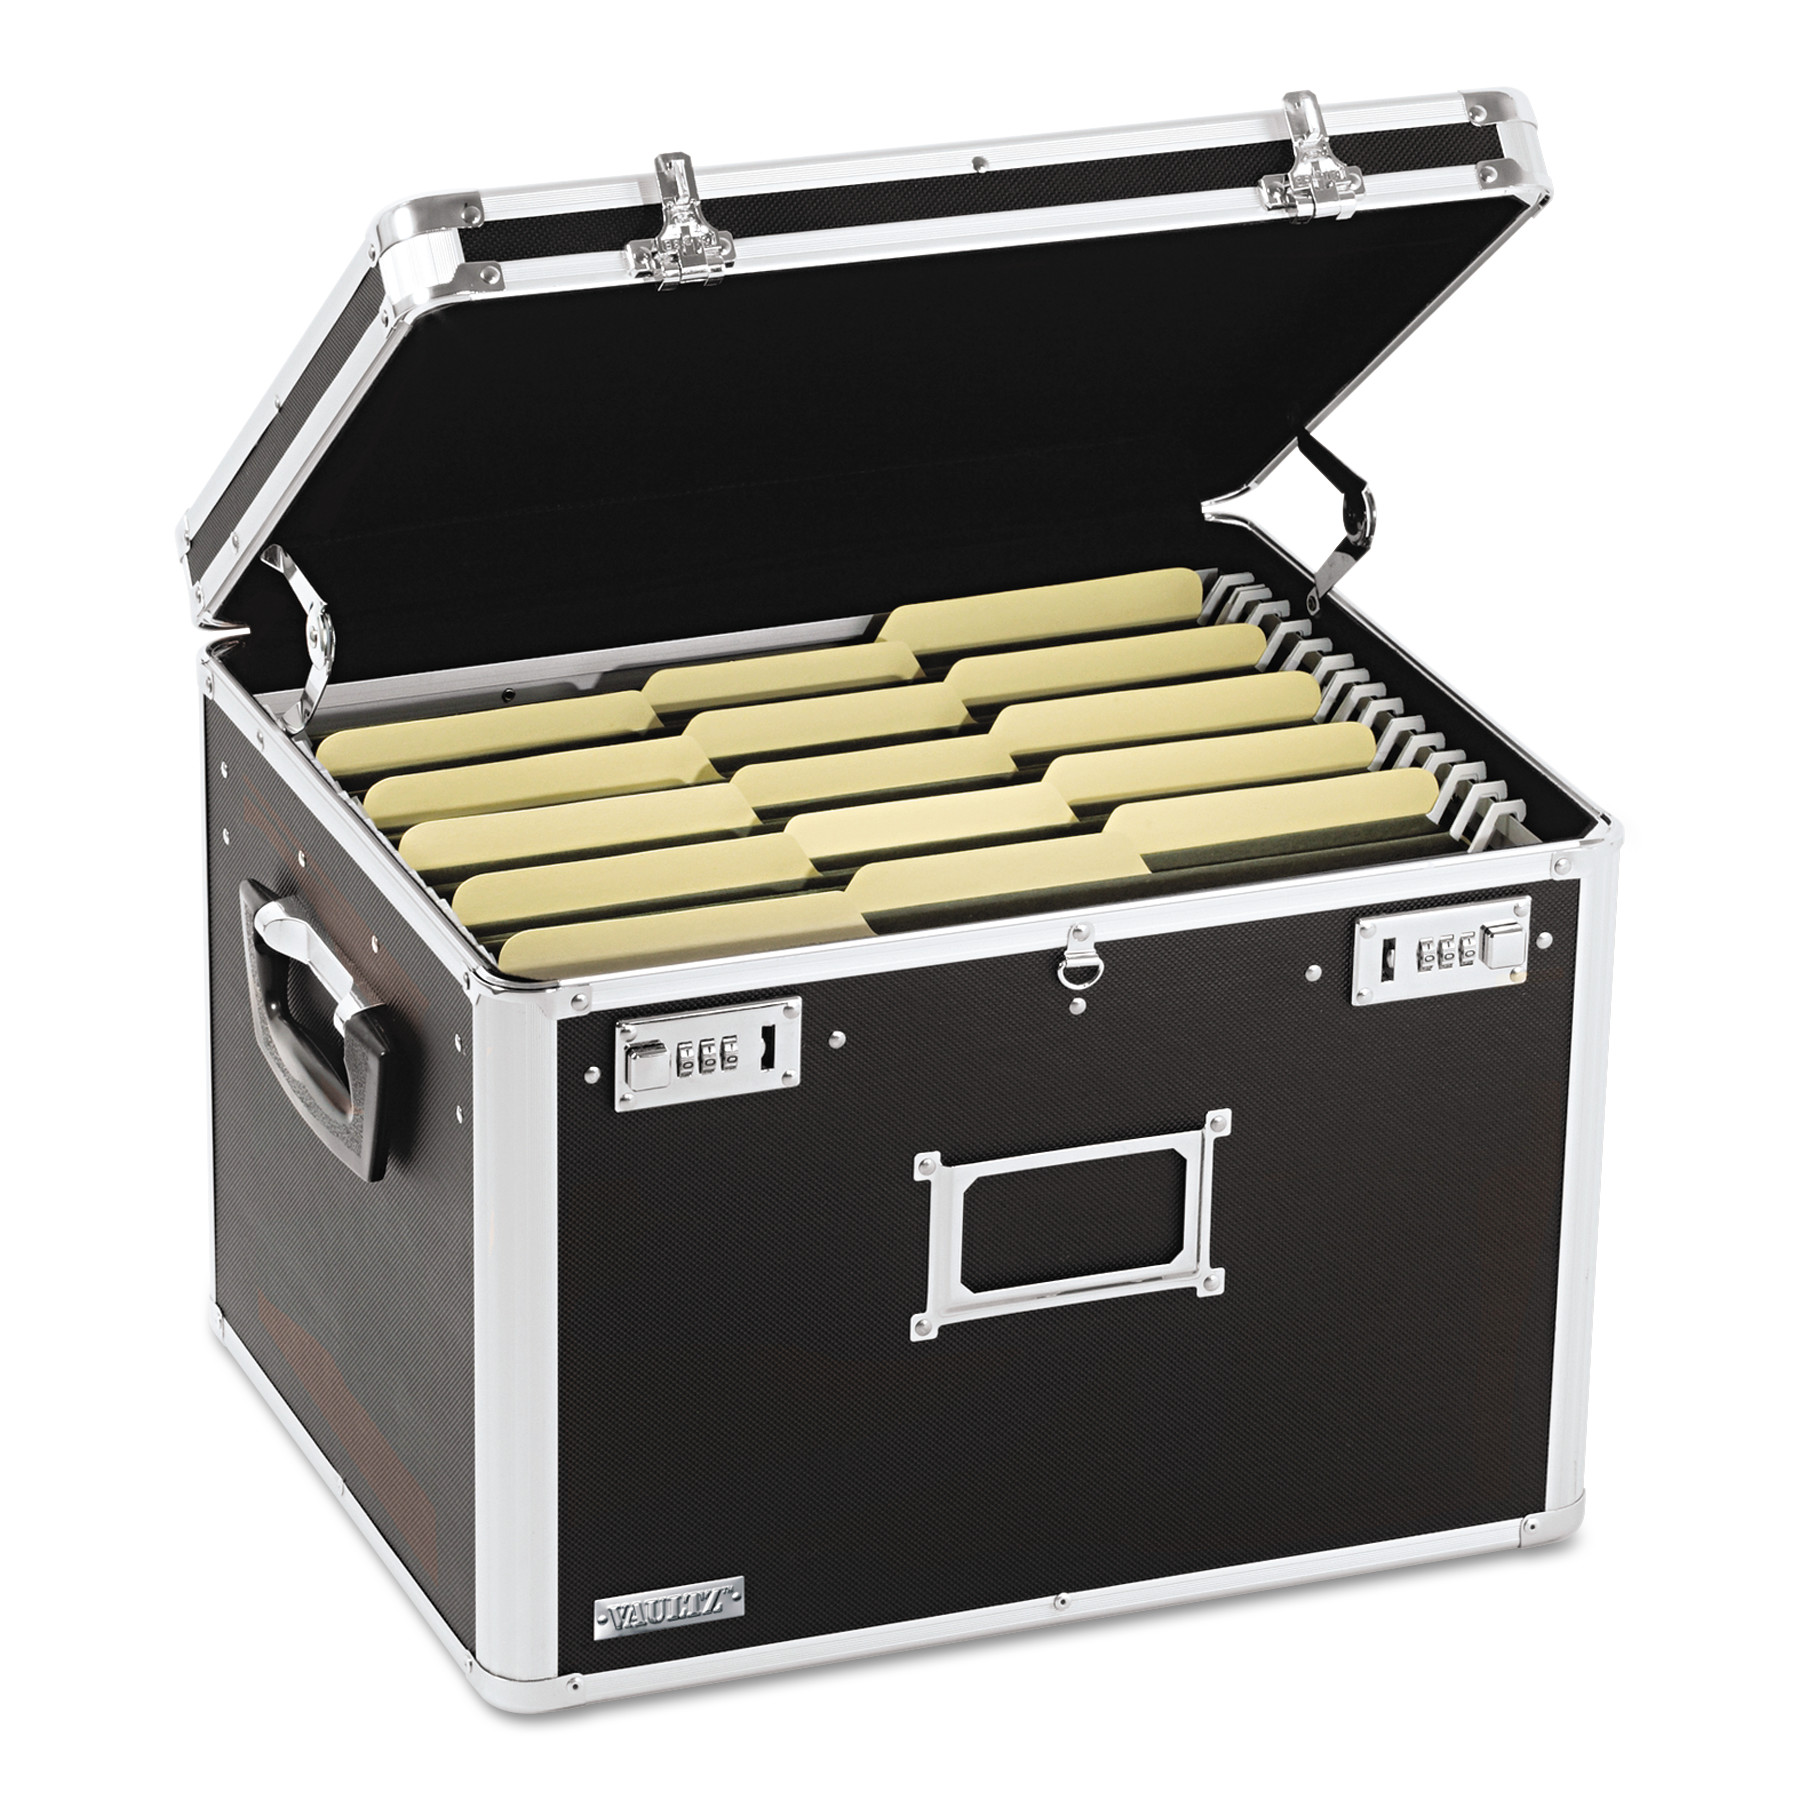 Vaultz Locking File Chest, Letter/Legal, 17 1/2 x 14 x 12 1/2, Black -IDEVZ01008